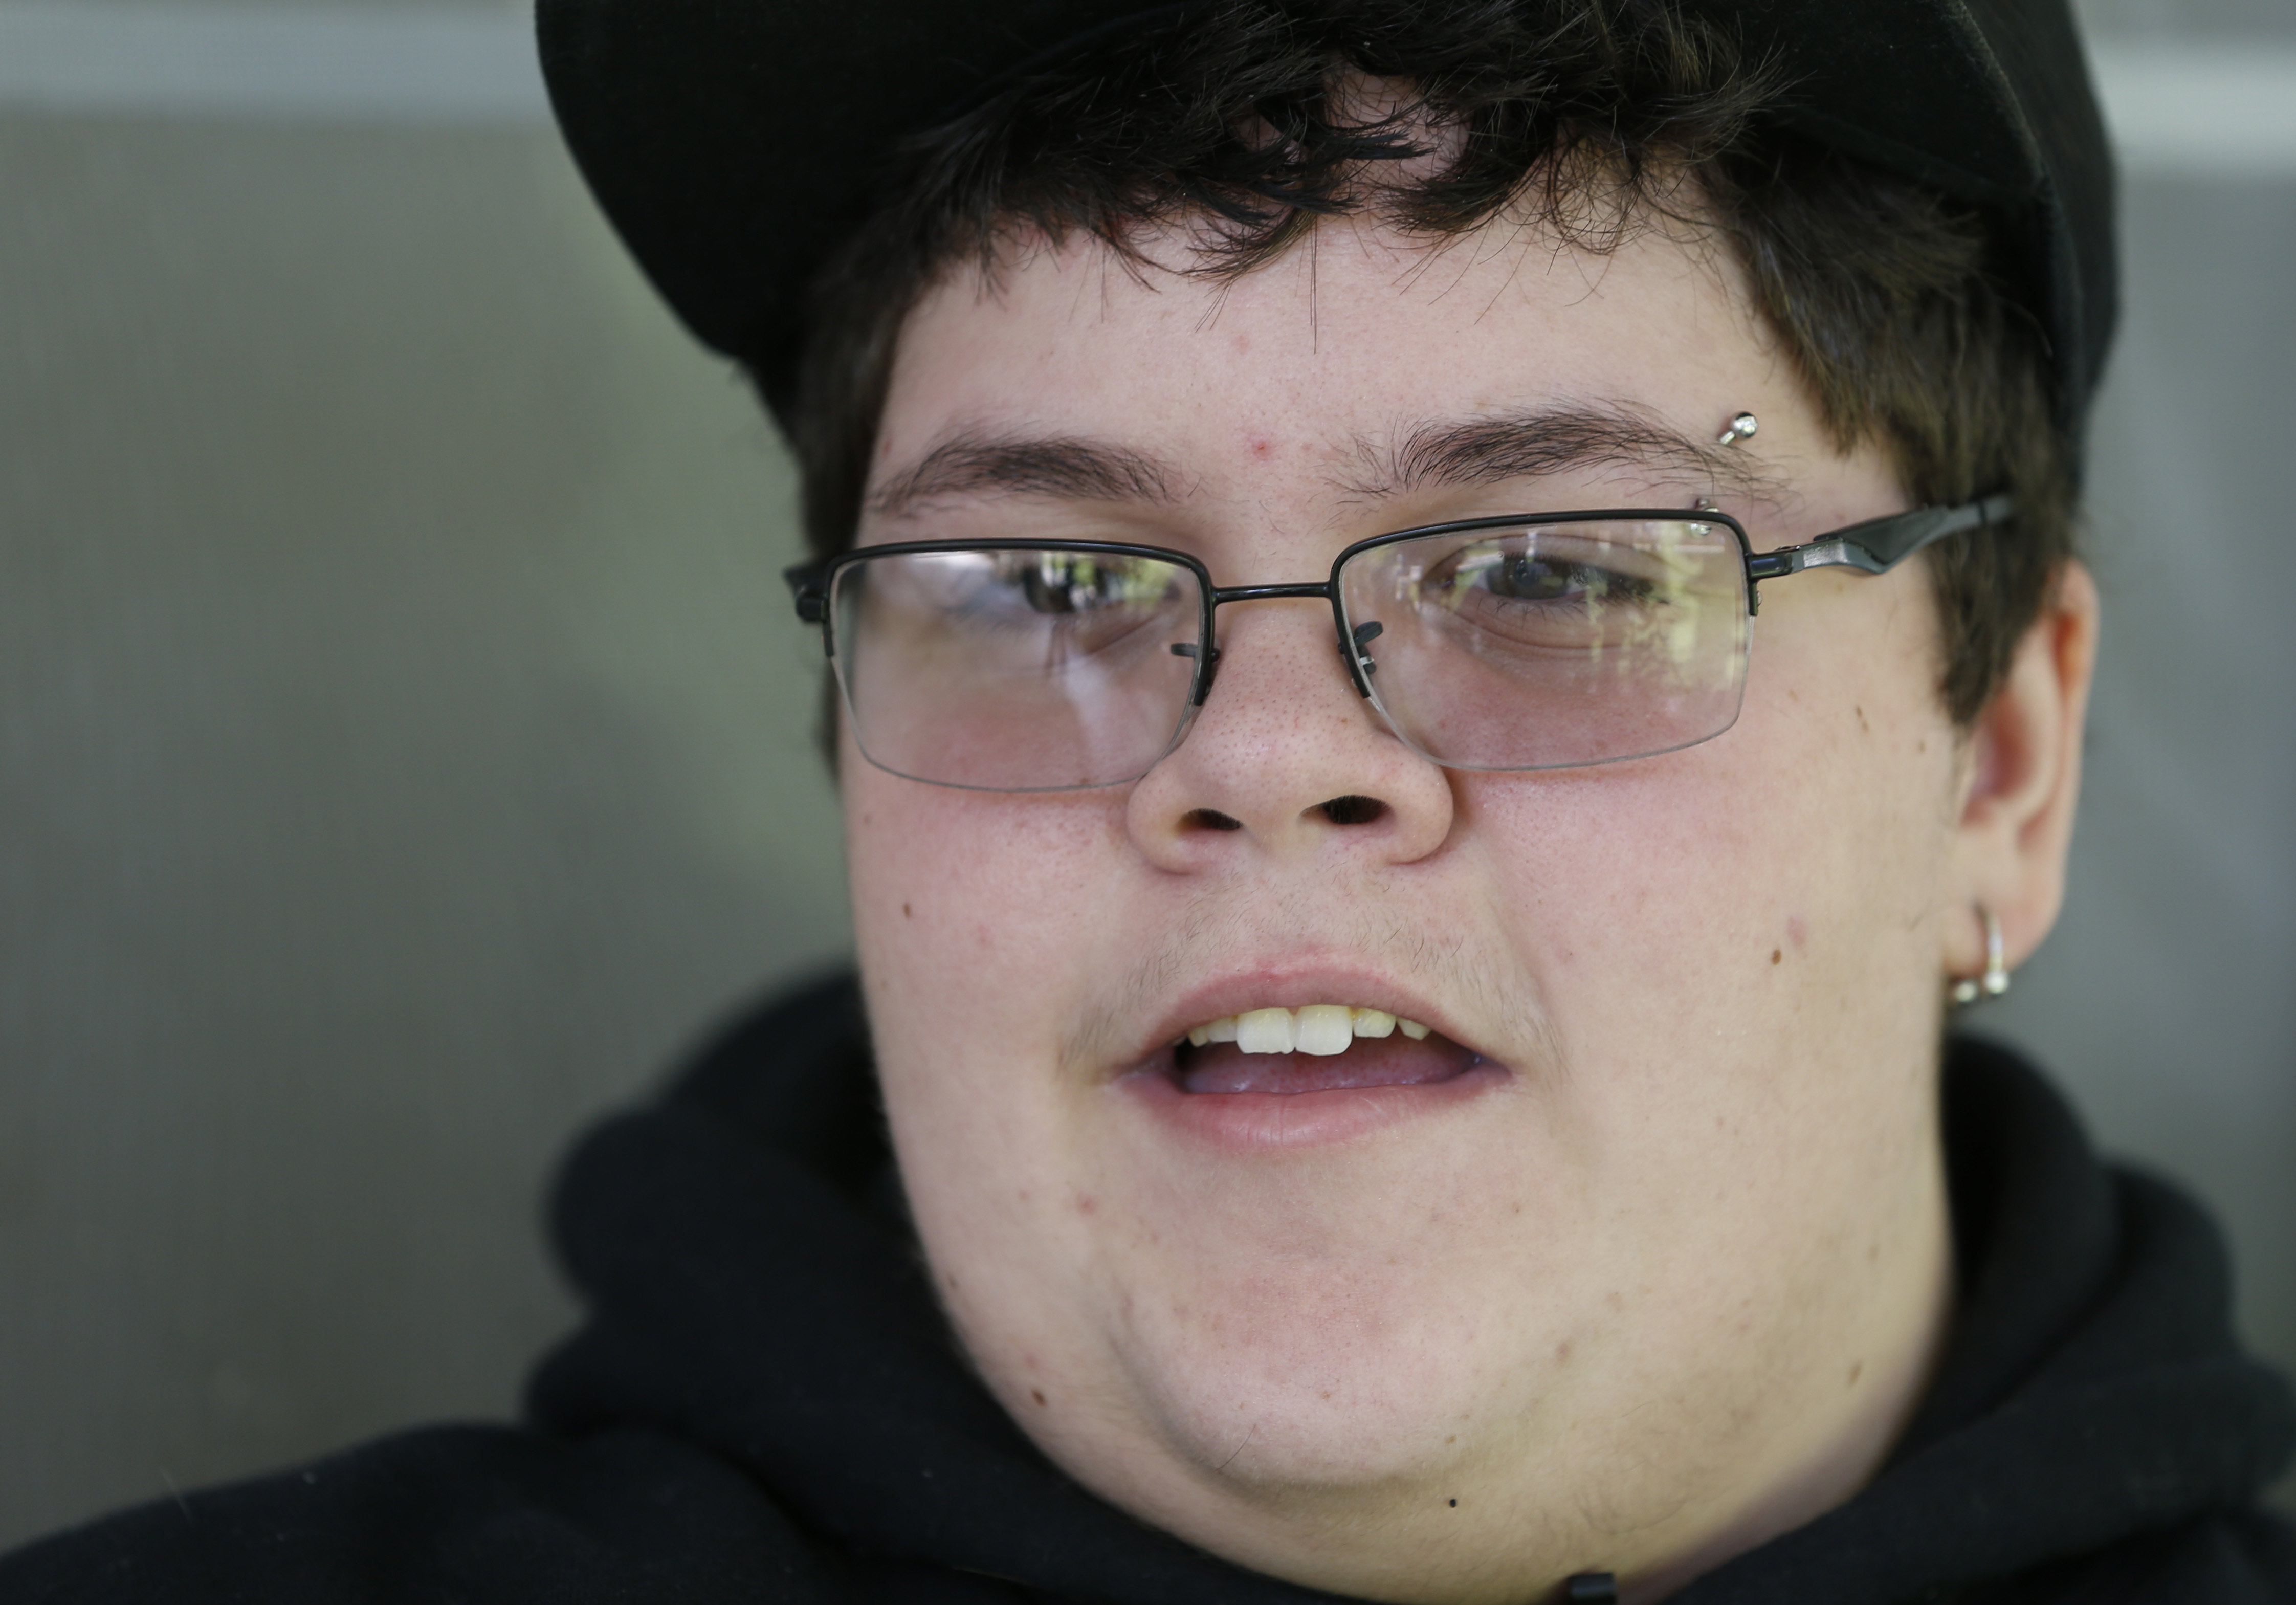 Gavin Grimm speaks during an interview at his home in Gloucester, Va., in 2015. (Steve Helber, Associated Press)